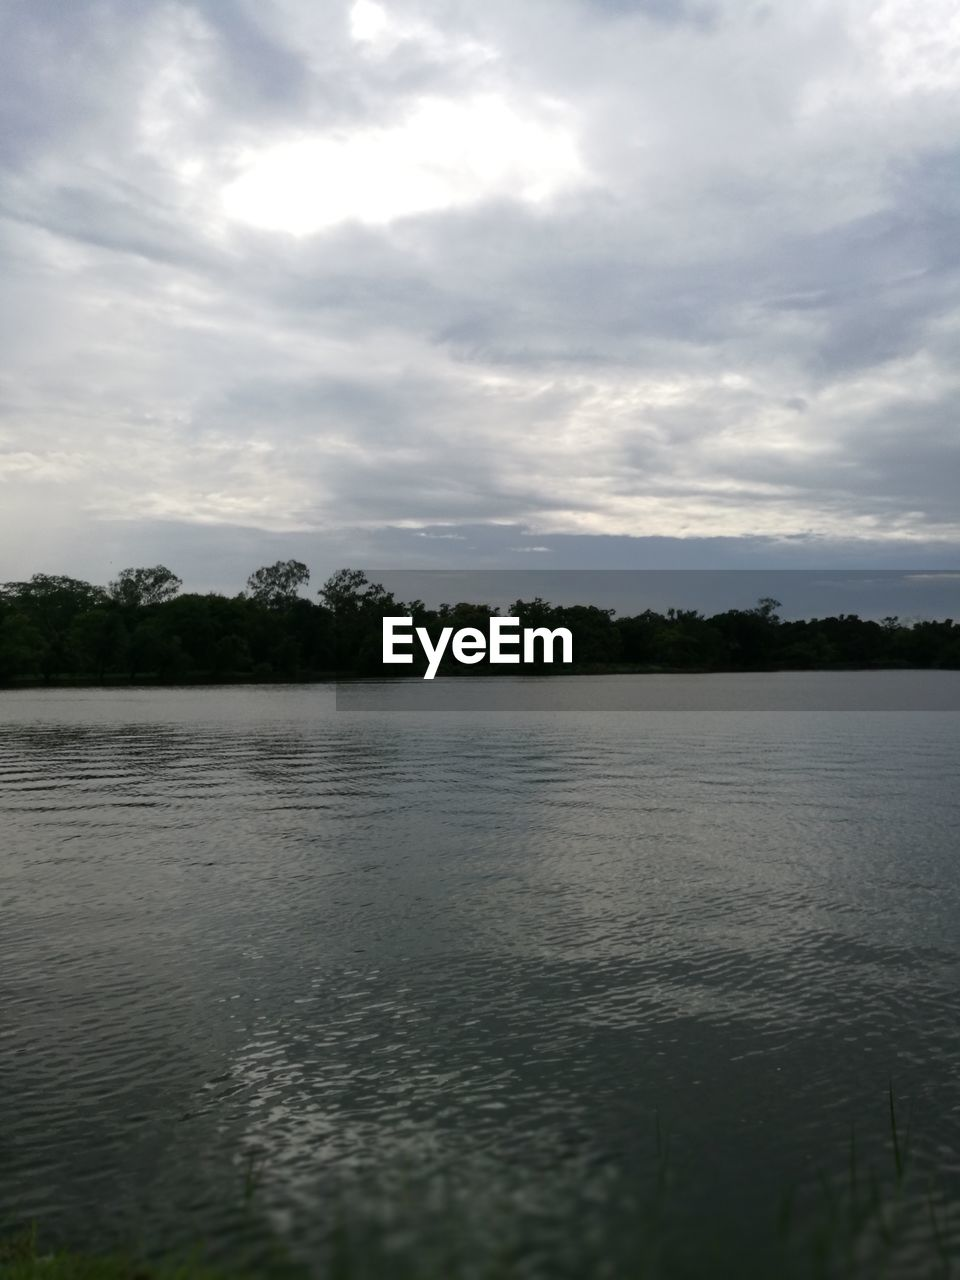 water, sky, tranquility, cloud - sky, nature, lake, tranquil scene, no people, scenics, beauty in nature, tree, outdoors, waterfront, day